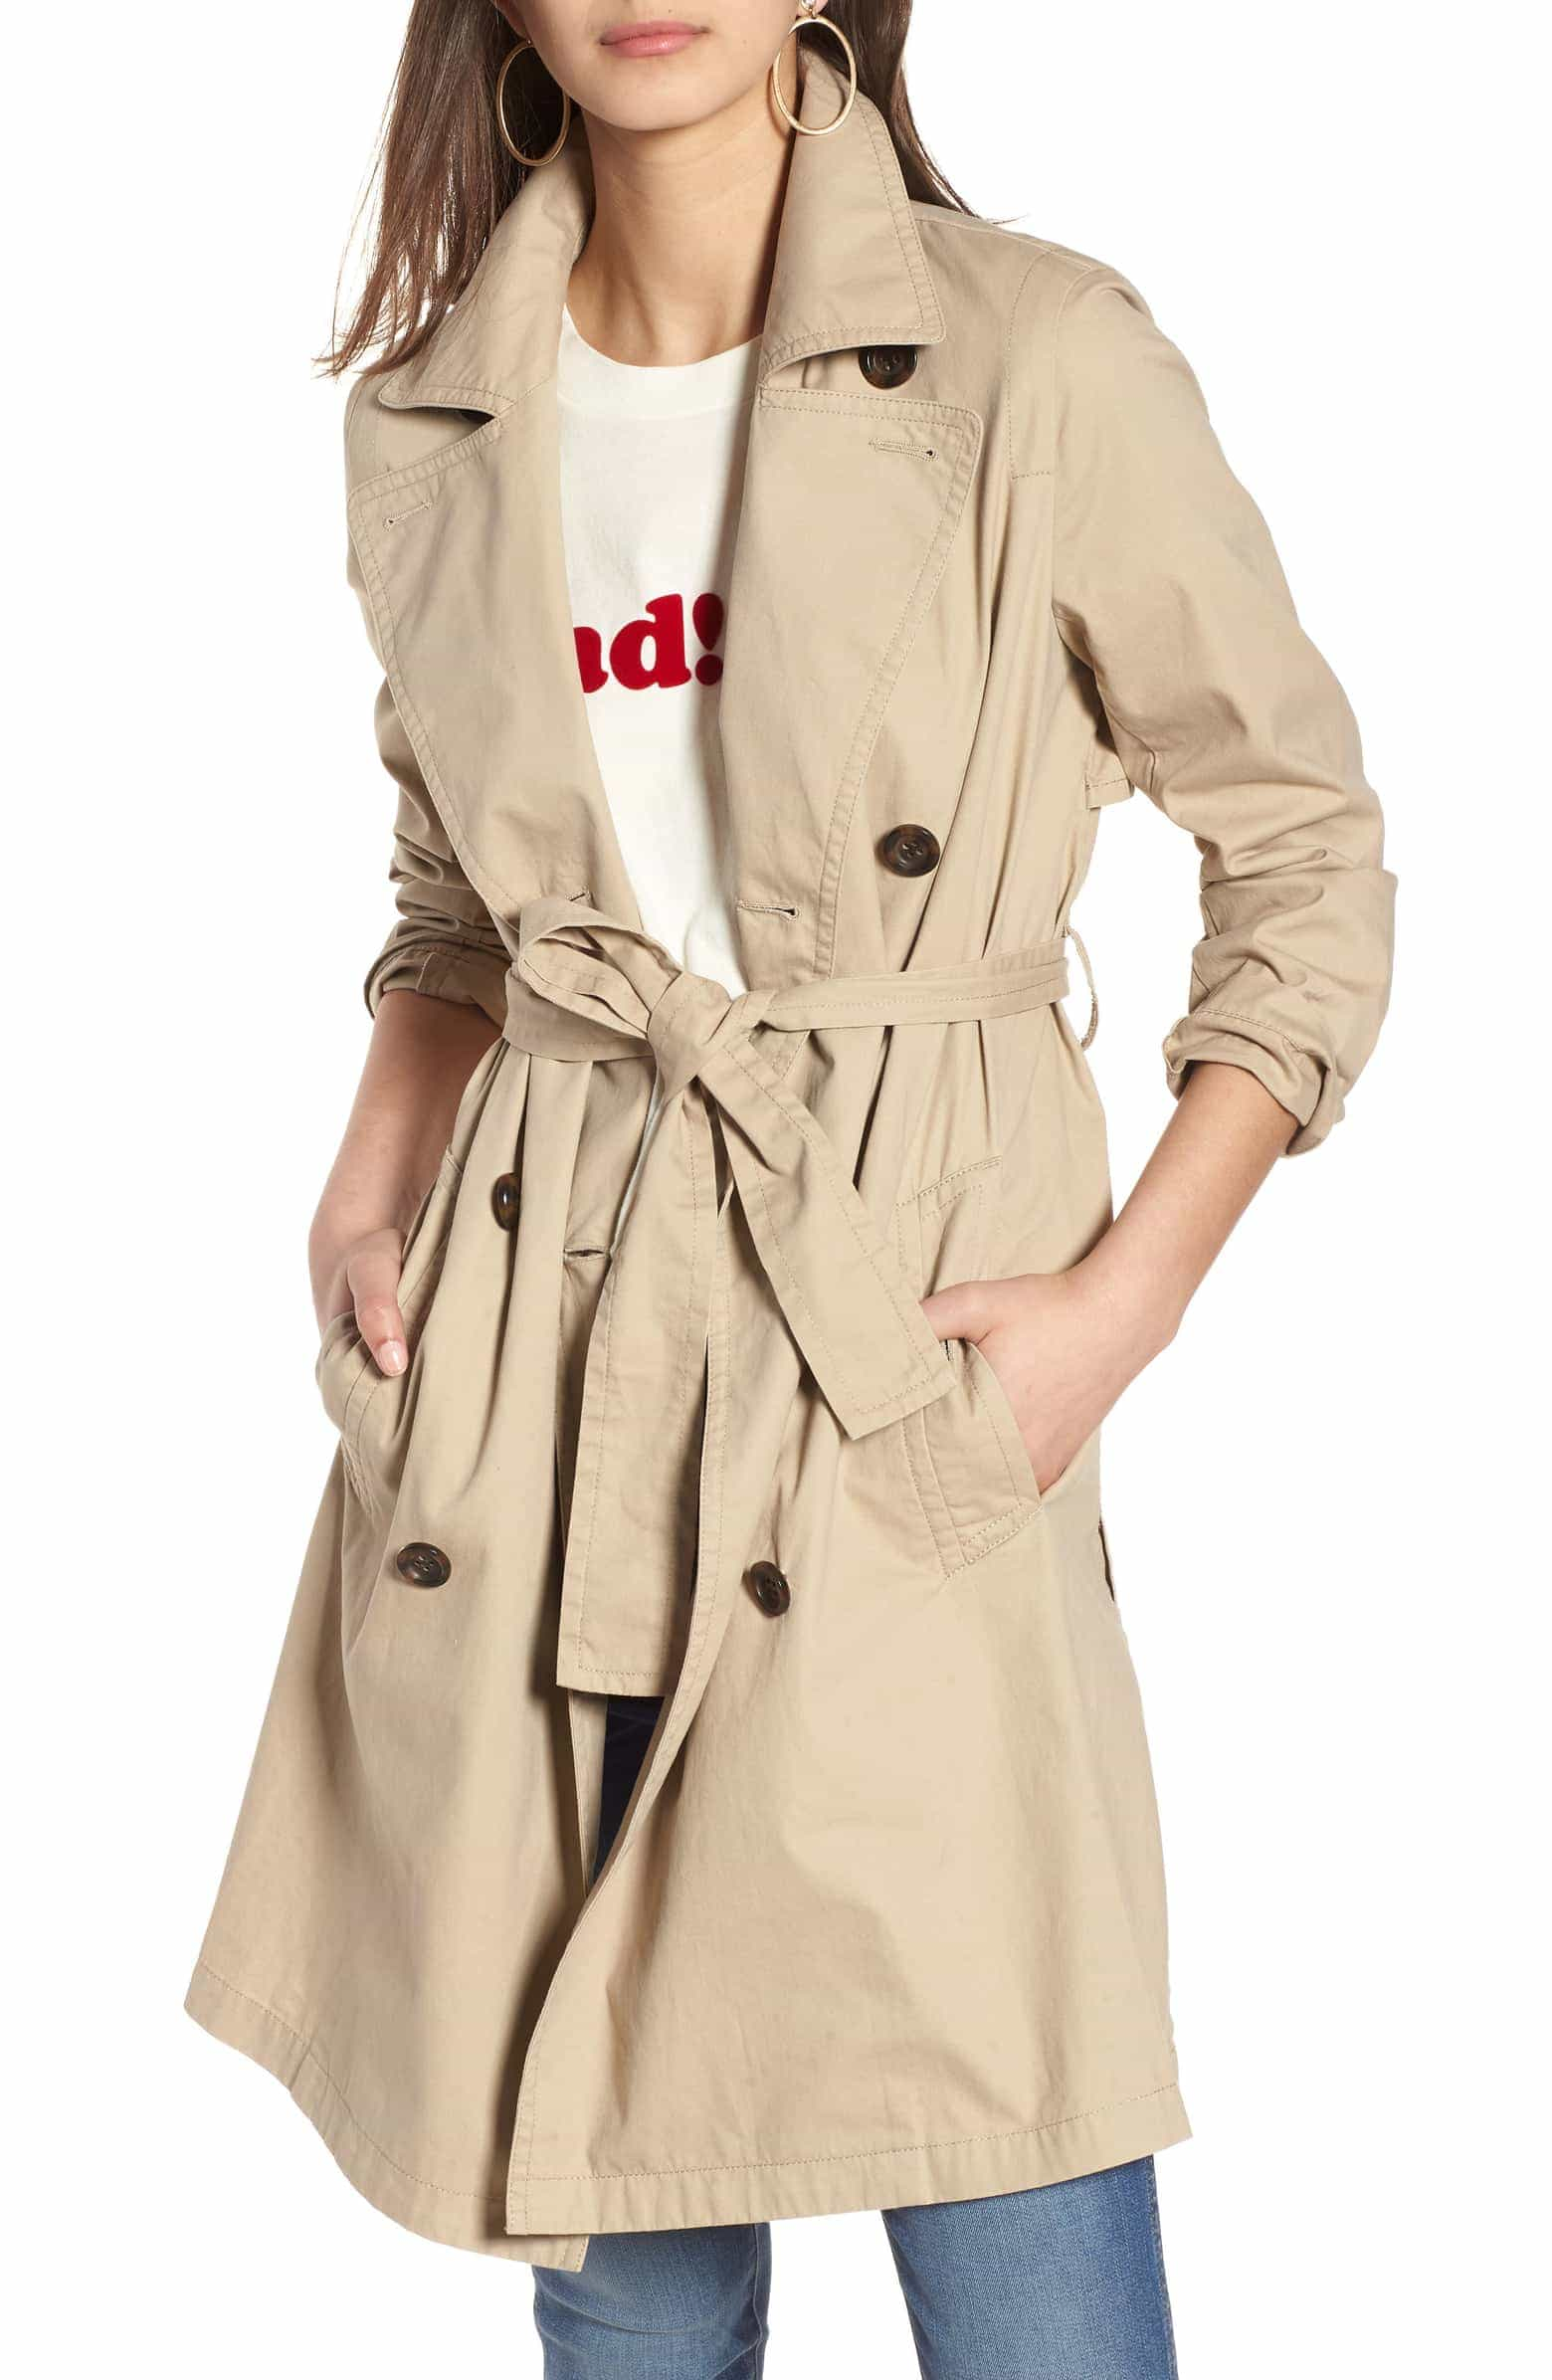 Fall Capsule Wardrobe - The Only 7 Pieces You Need - Trench Coat